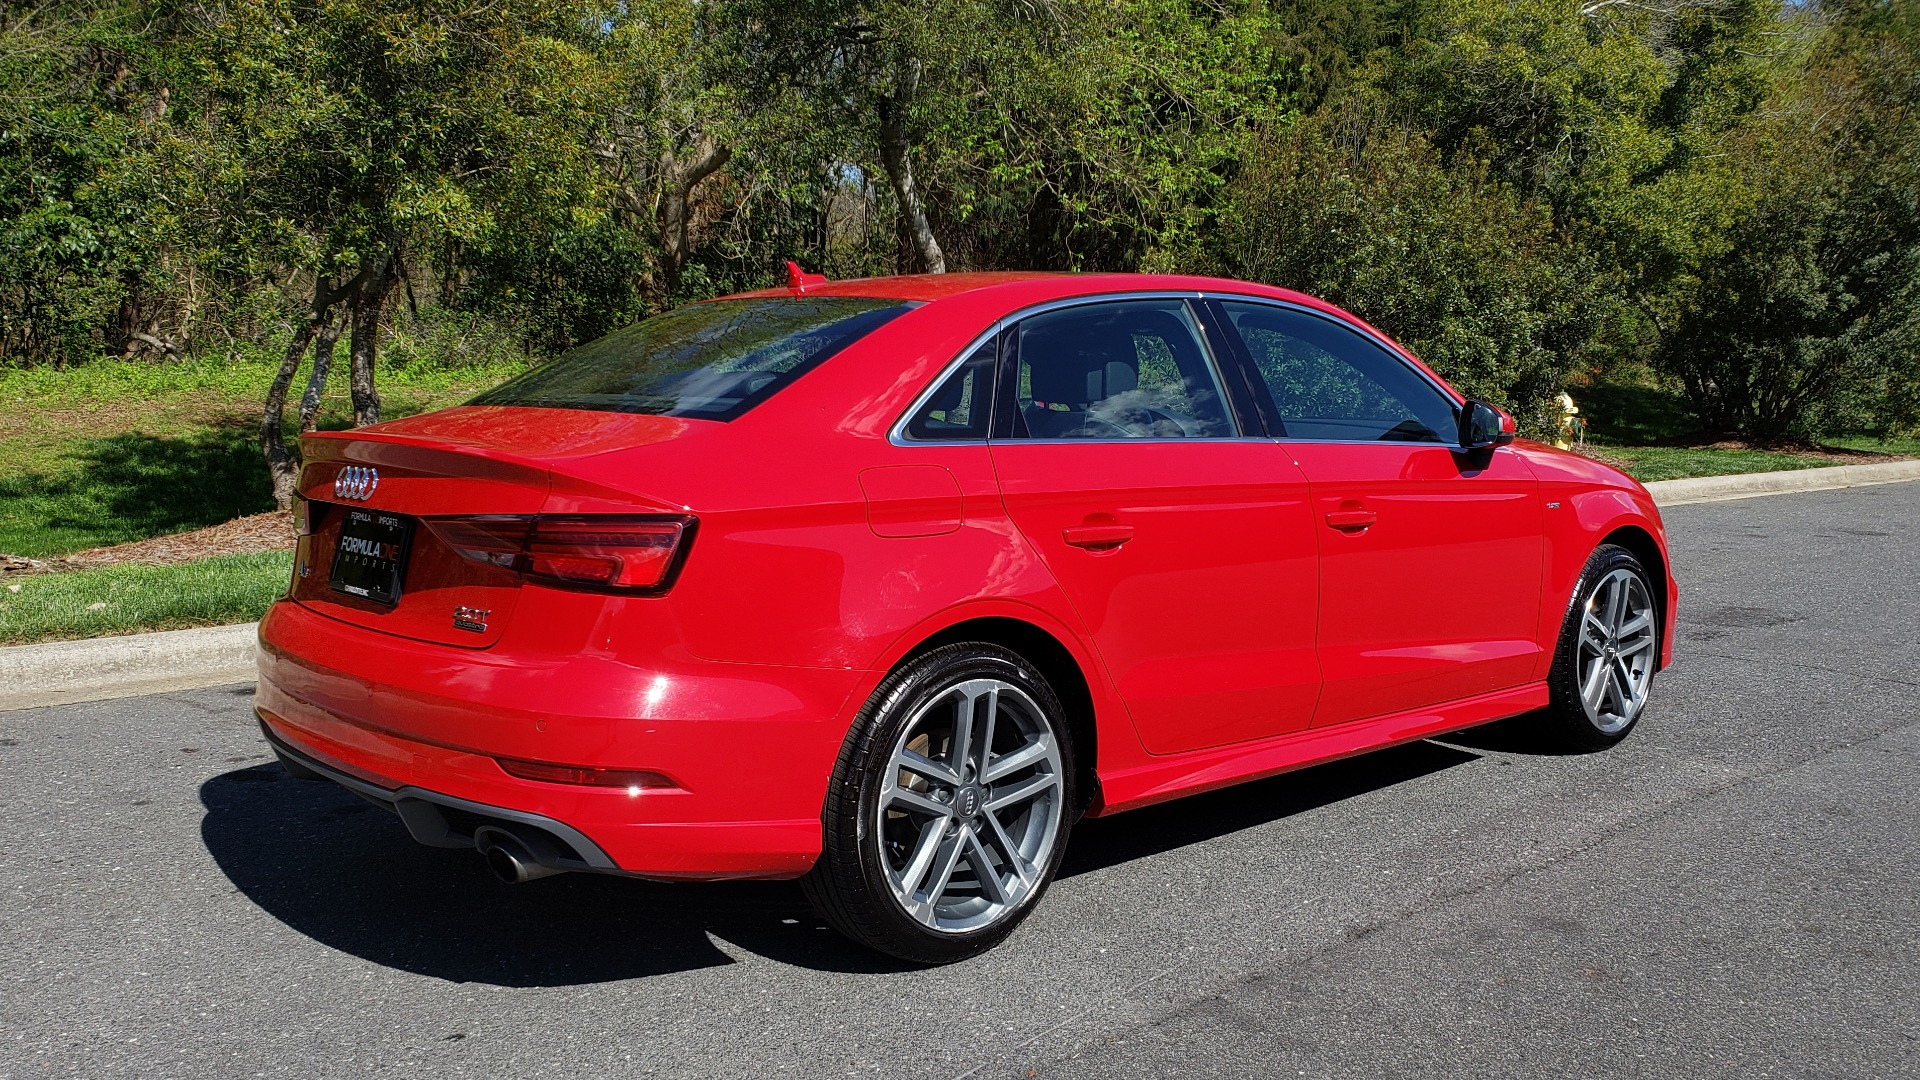 Used 2017 Audi A3 SEDAN PREMIUM PLUS / S-TRONIC / NAV / TECH / SUNROOF / REARVIEW for sale Sold at Formula Imports in Charlotte NC 28227 6